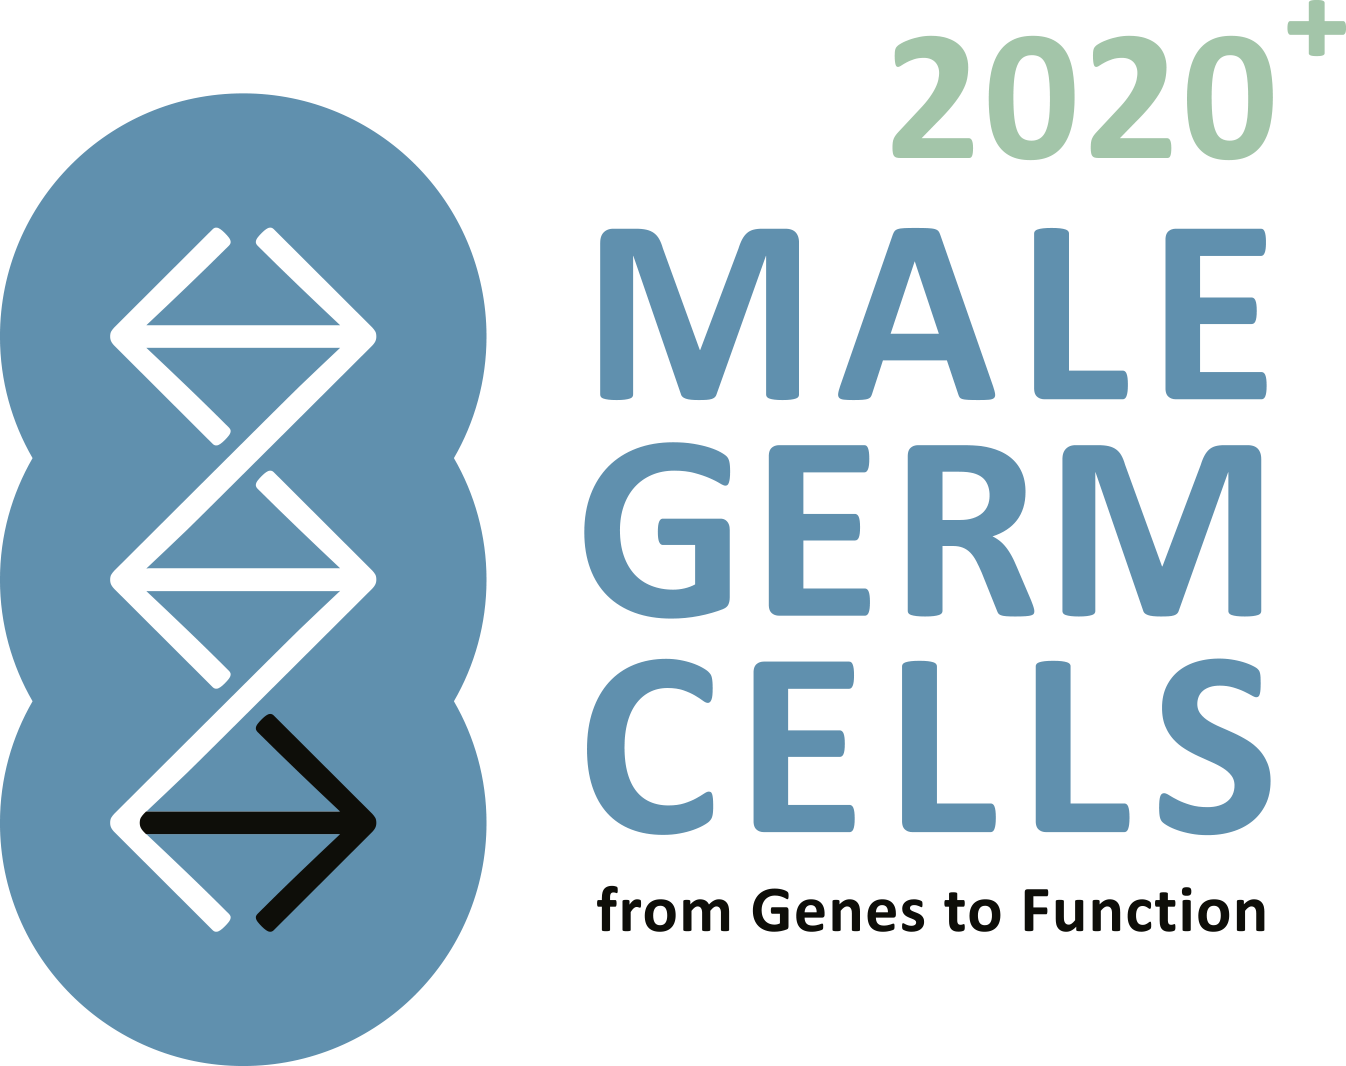 Male Germ Cells Logo